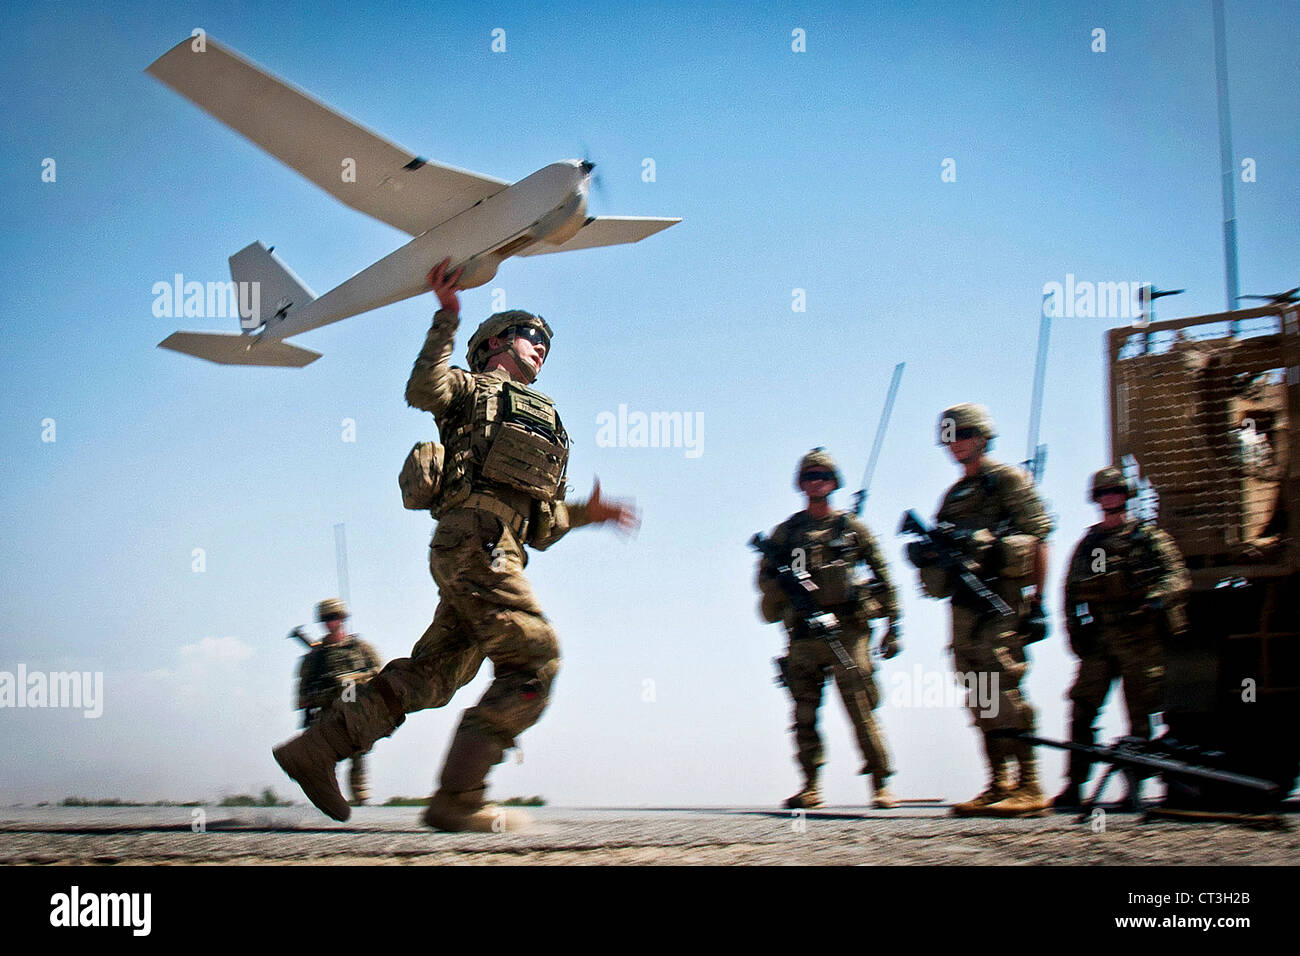 A US Army soldier with the 82nd Airborne Division's 1st Brigade Combat Team, launches a Puma unmanned aerial - Stock Image